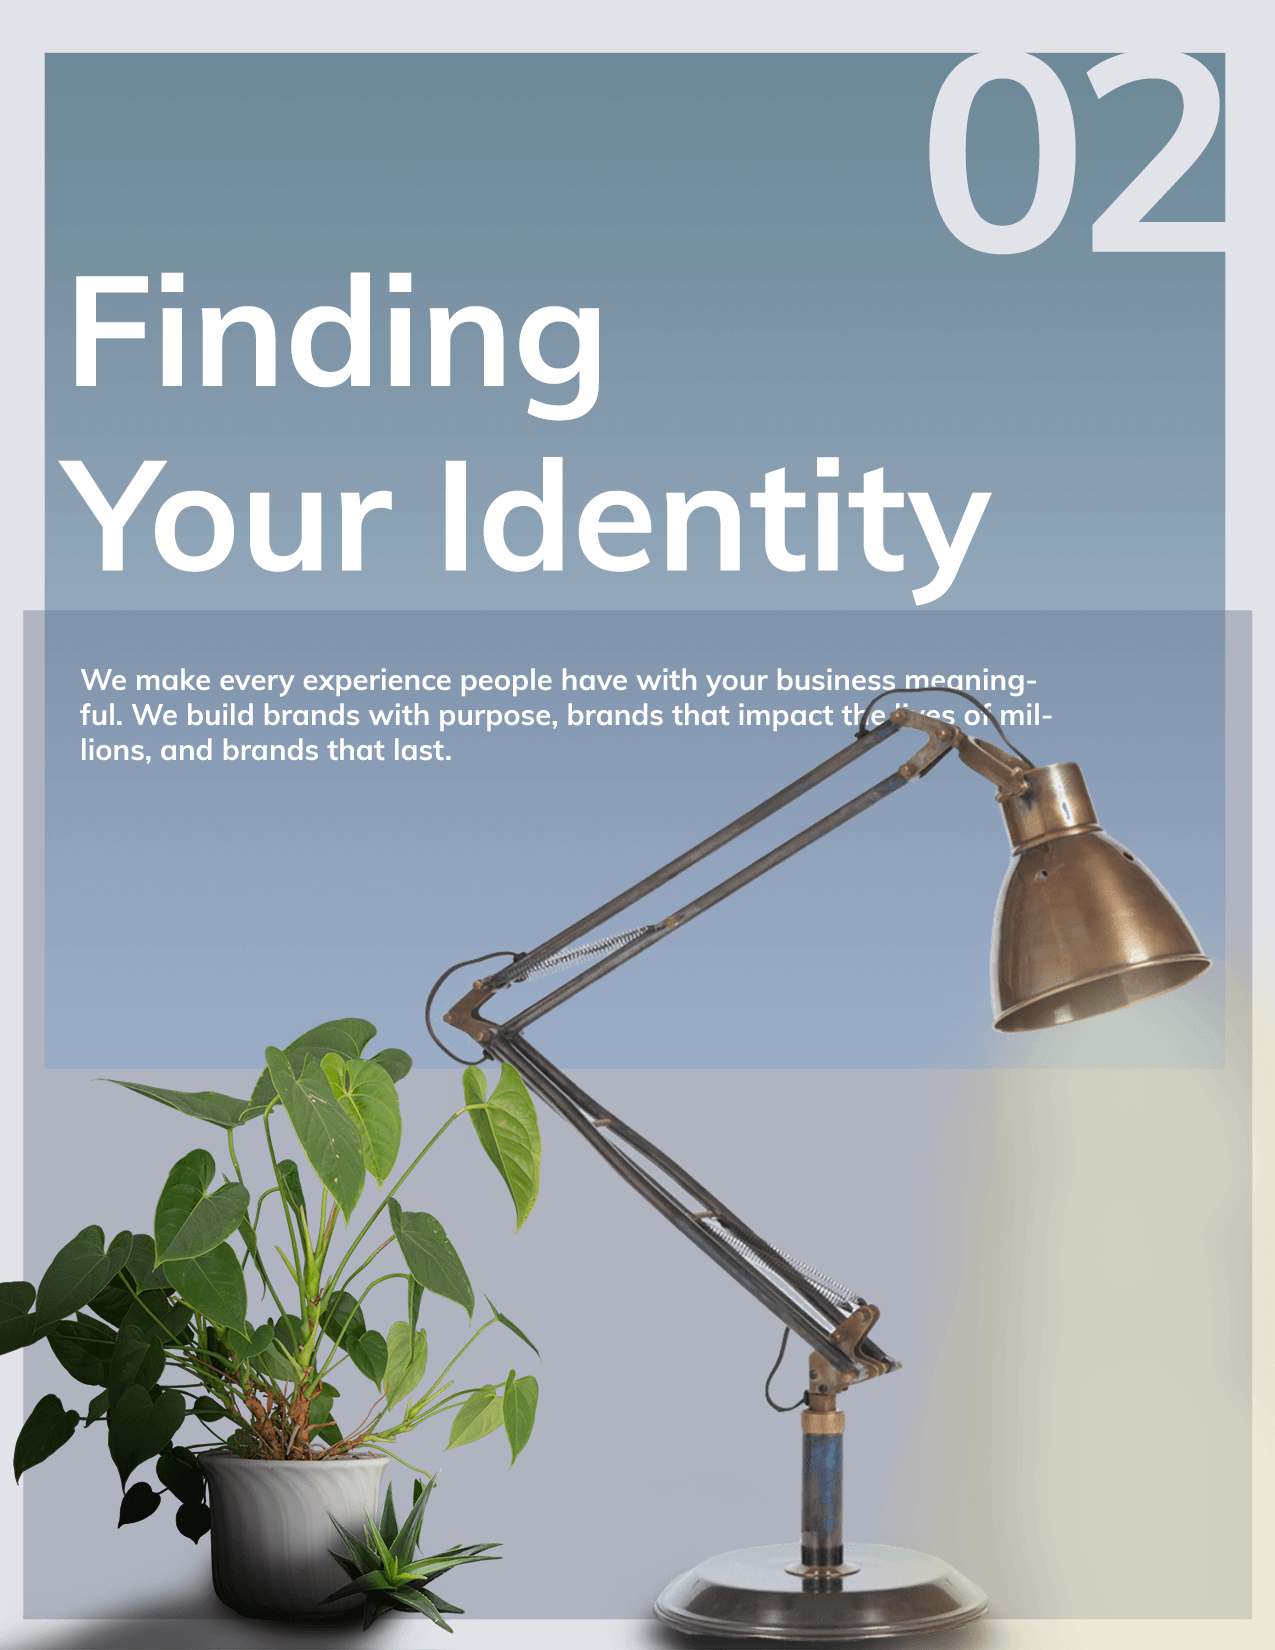 Saint Global - Finding your identity